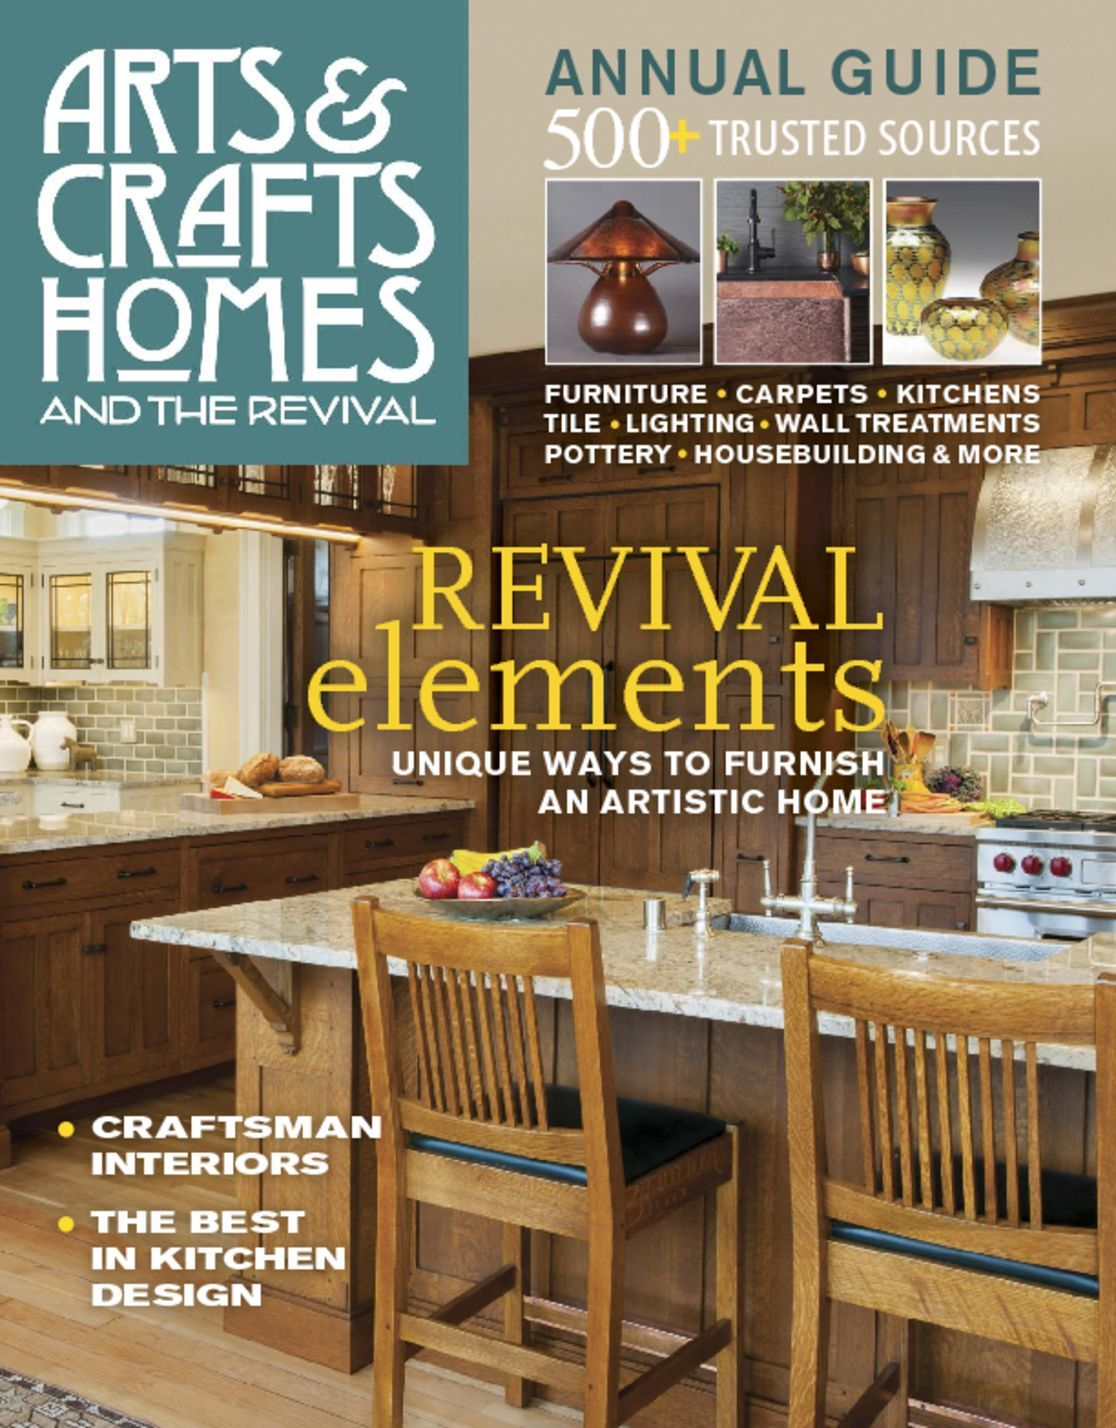 Arts crafts homes magazine digital for Arts and crafts home magazine